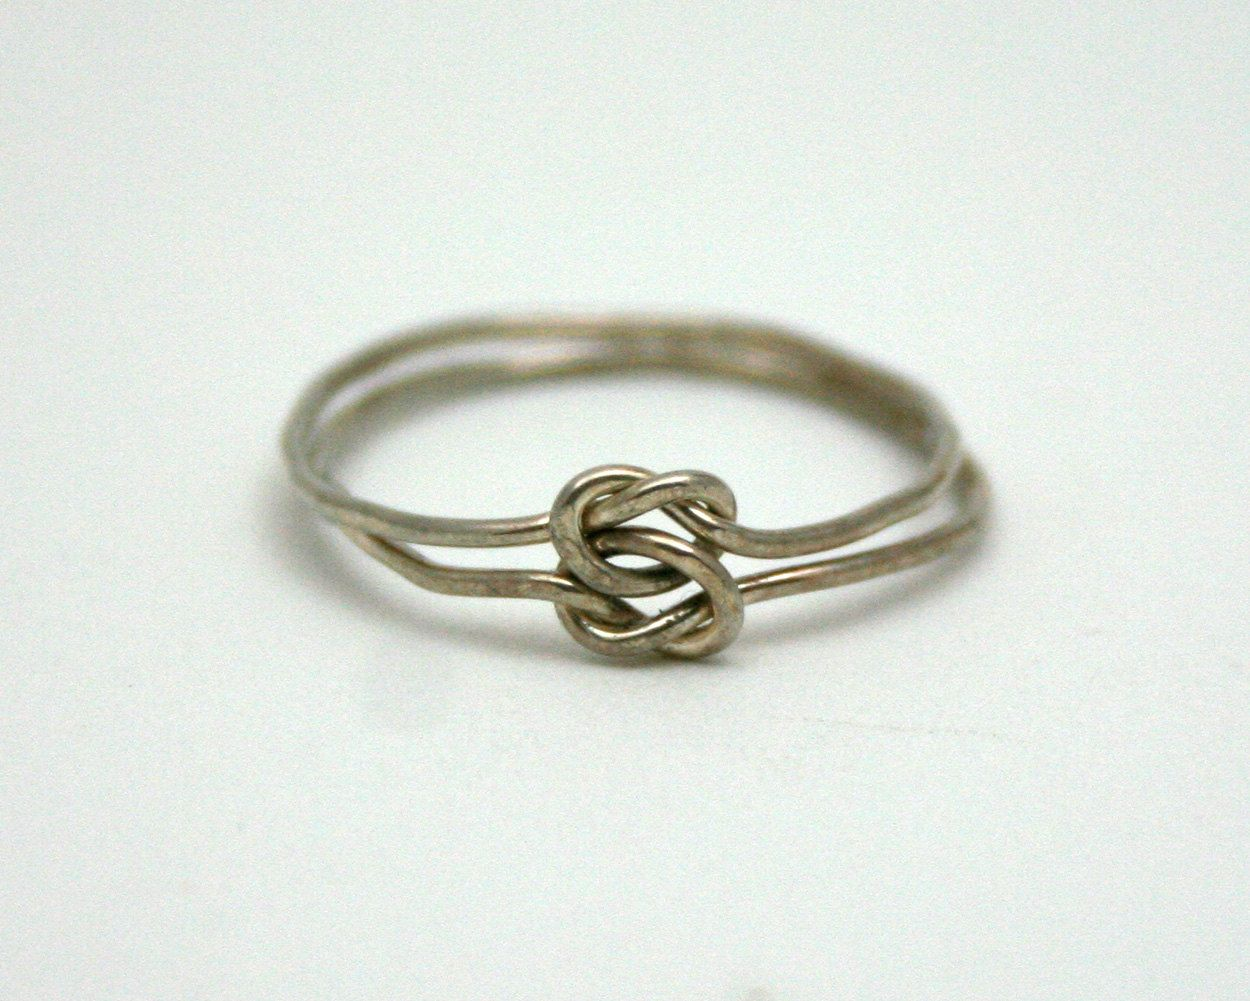 Vintage Silver Wire Knot Ring, love knot, promise, ring size 7 ...